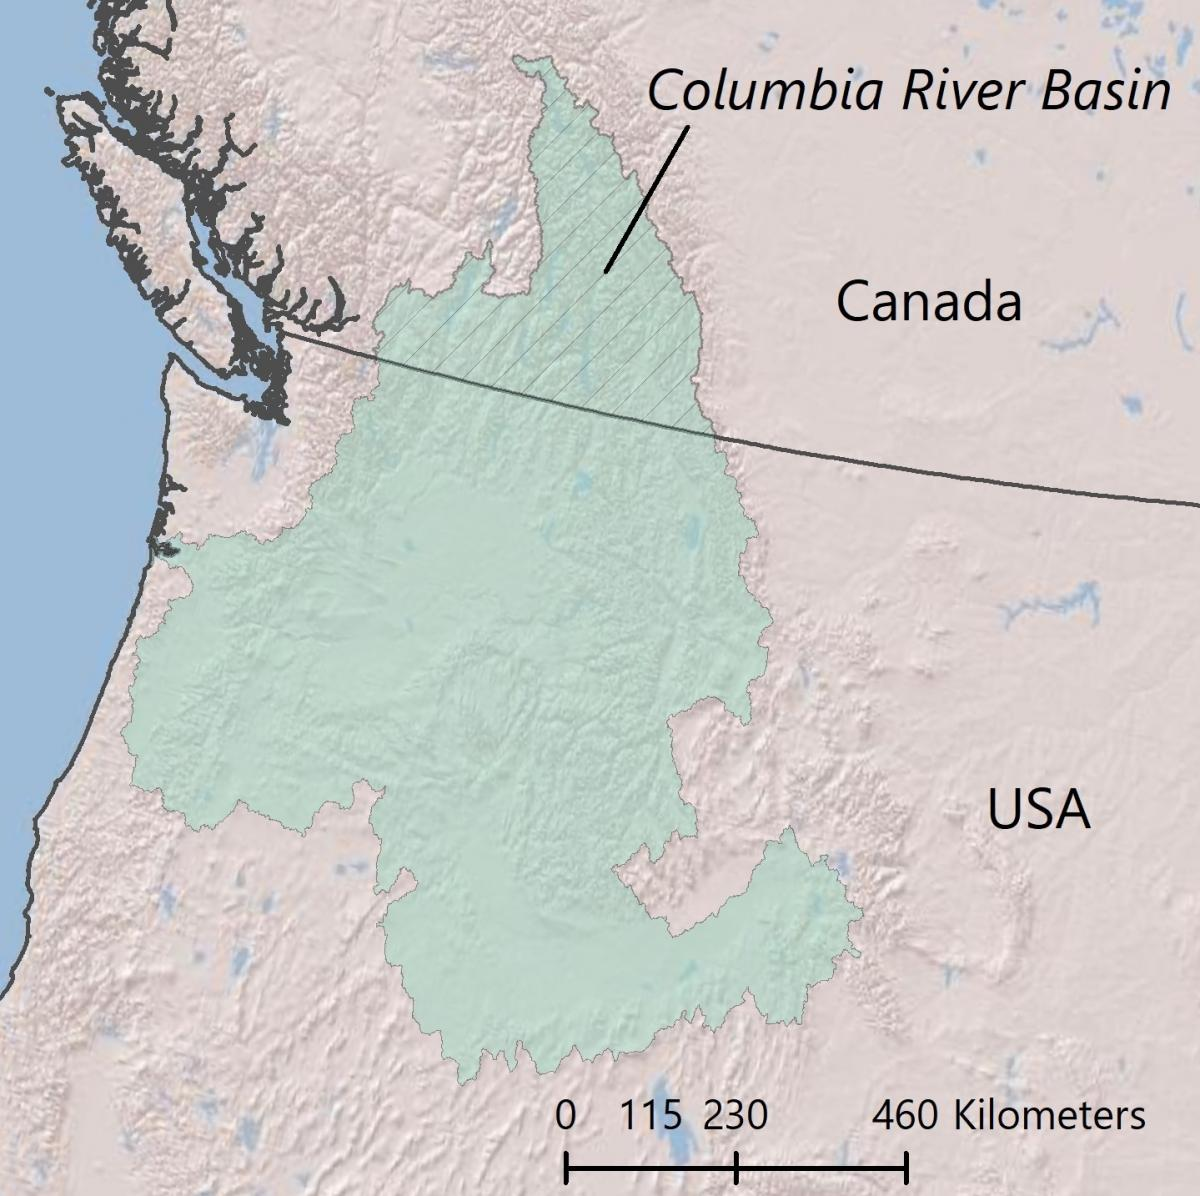 Columbia River Basin and its BCUs - basin country units